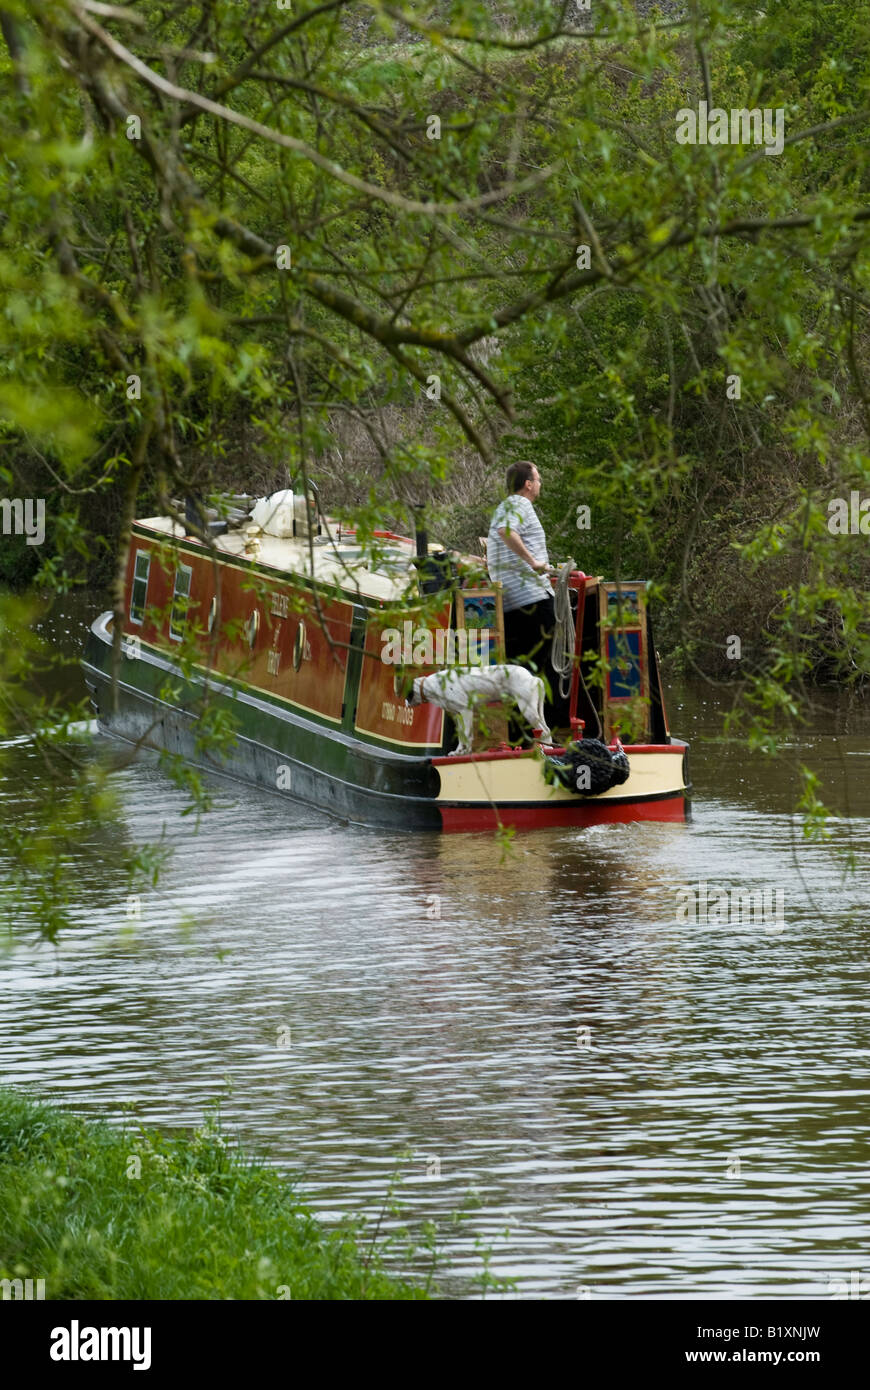 A man and his dog aboard a narrow boat on the Oxford Canal. UK - Stock Image